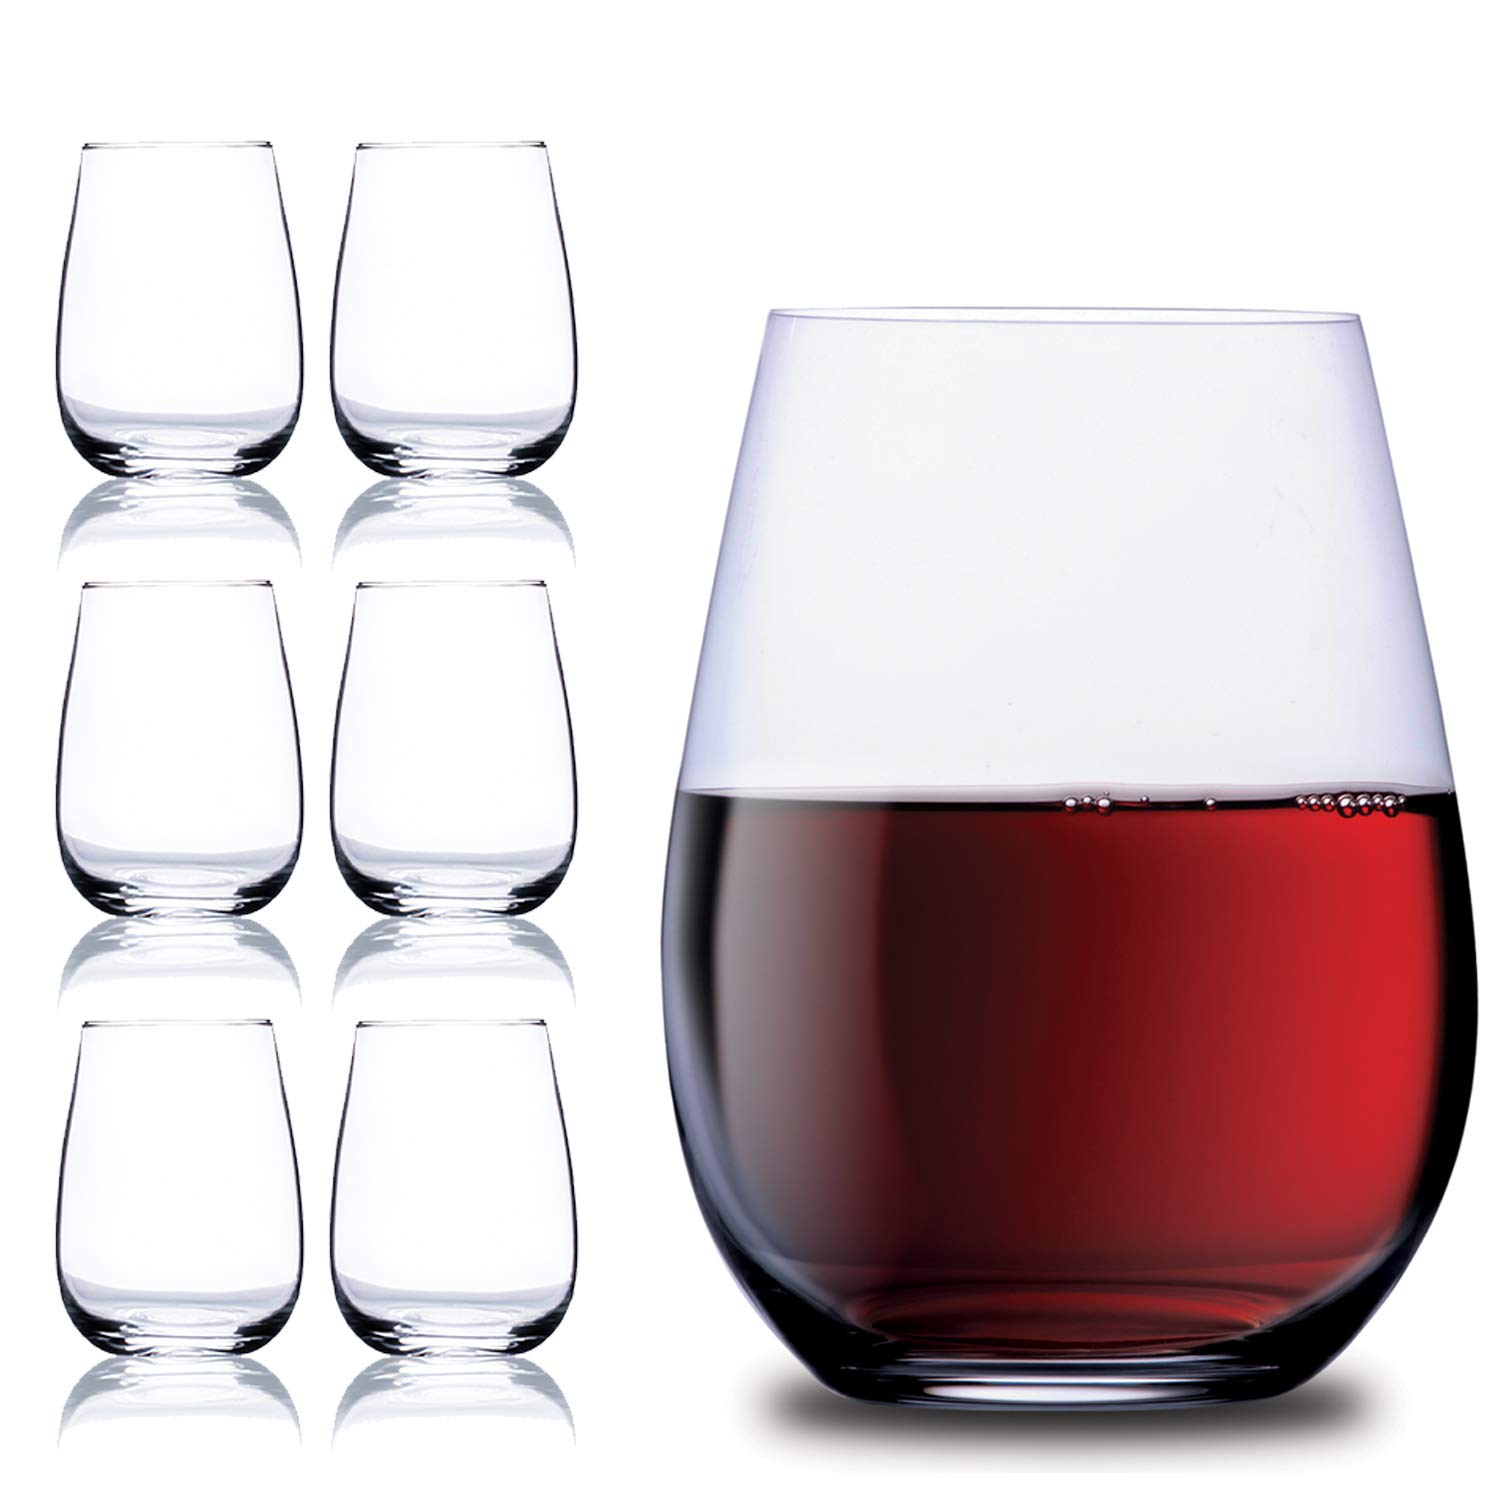 Chef's Star 15 Ounce Stemless Wine Glasses Set - Classic Durable Wine Cups Ideal for All Occasions - Packaged in a Gift box - Top Gift Idea! - Shatter-Resistant Glass (6 pack